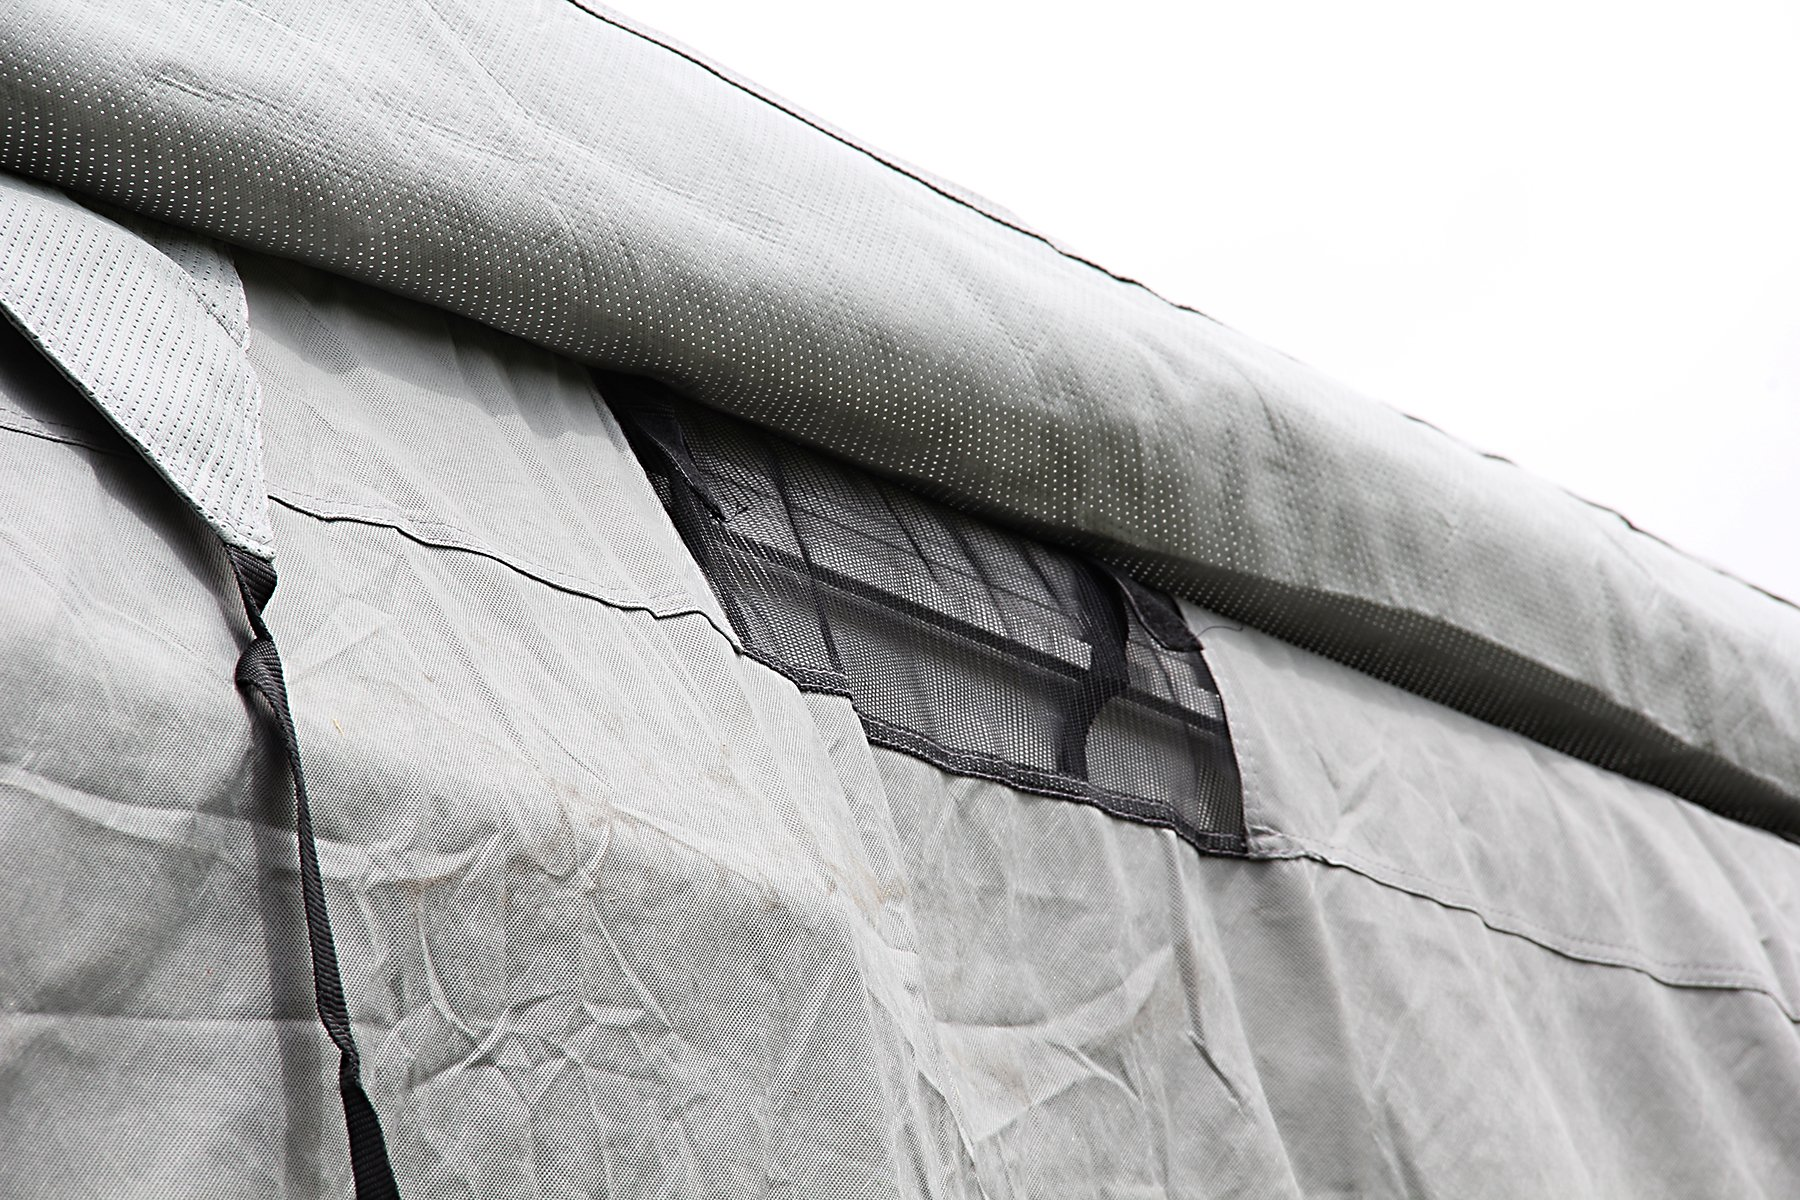 Camco 45782 19' ULTRAGuard Van Cover by Camco (Image #1)